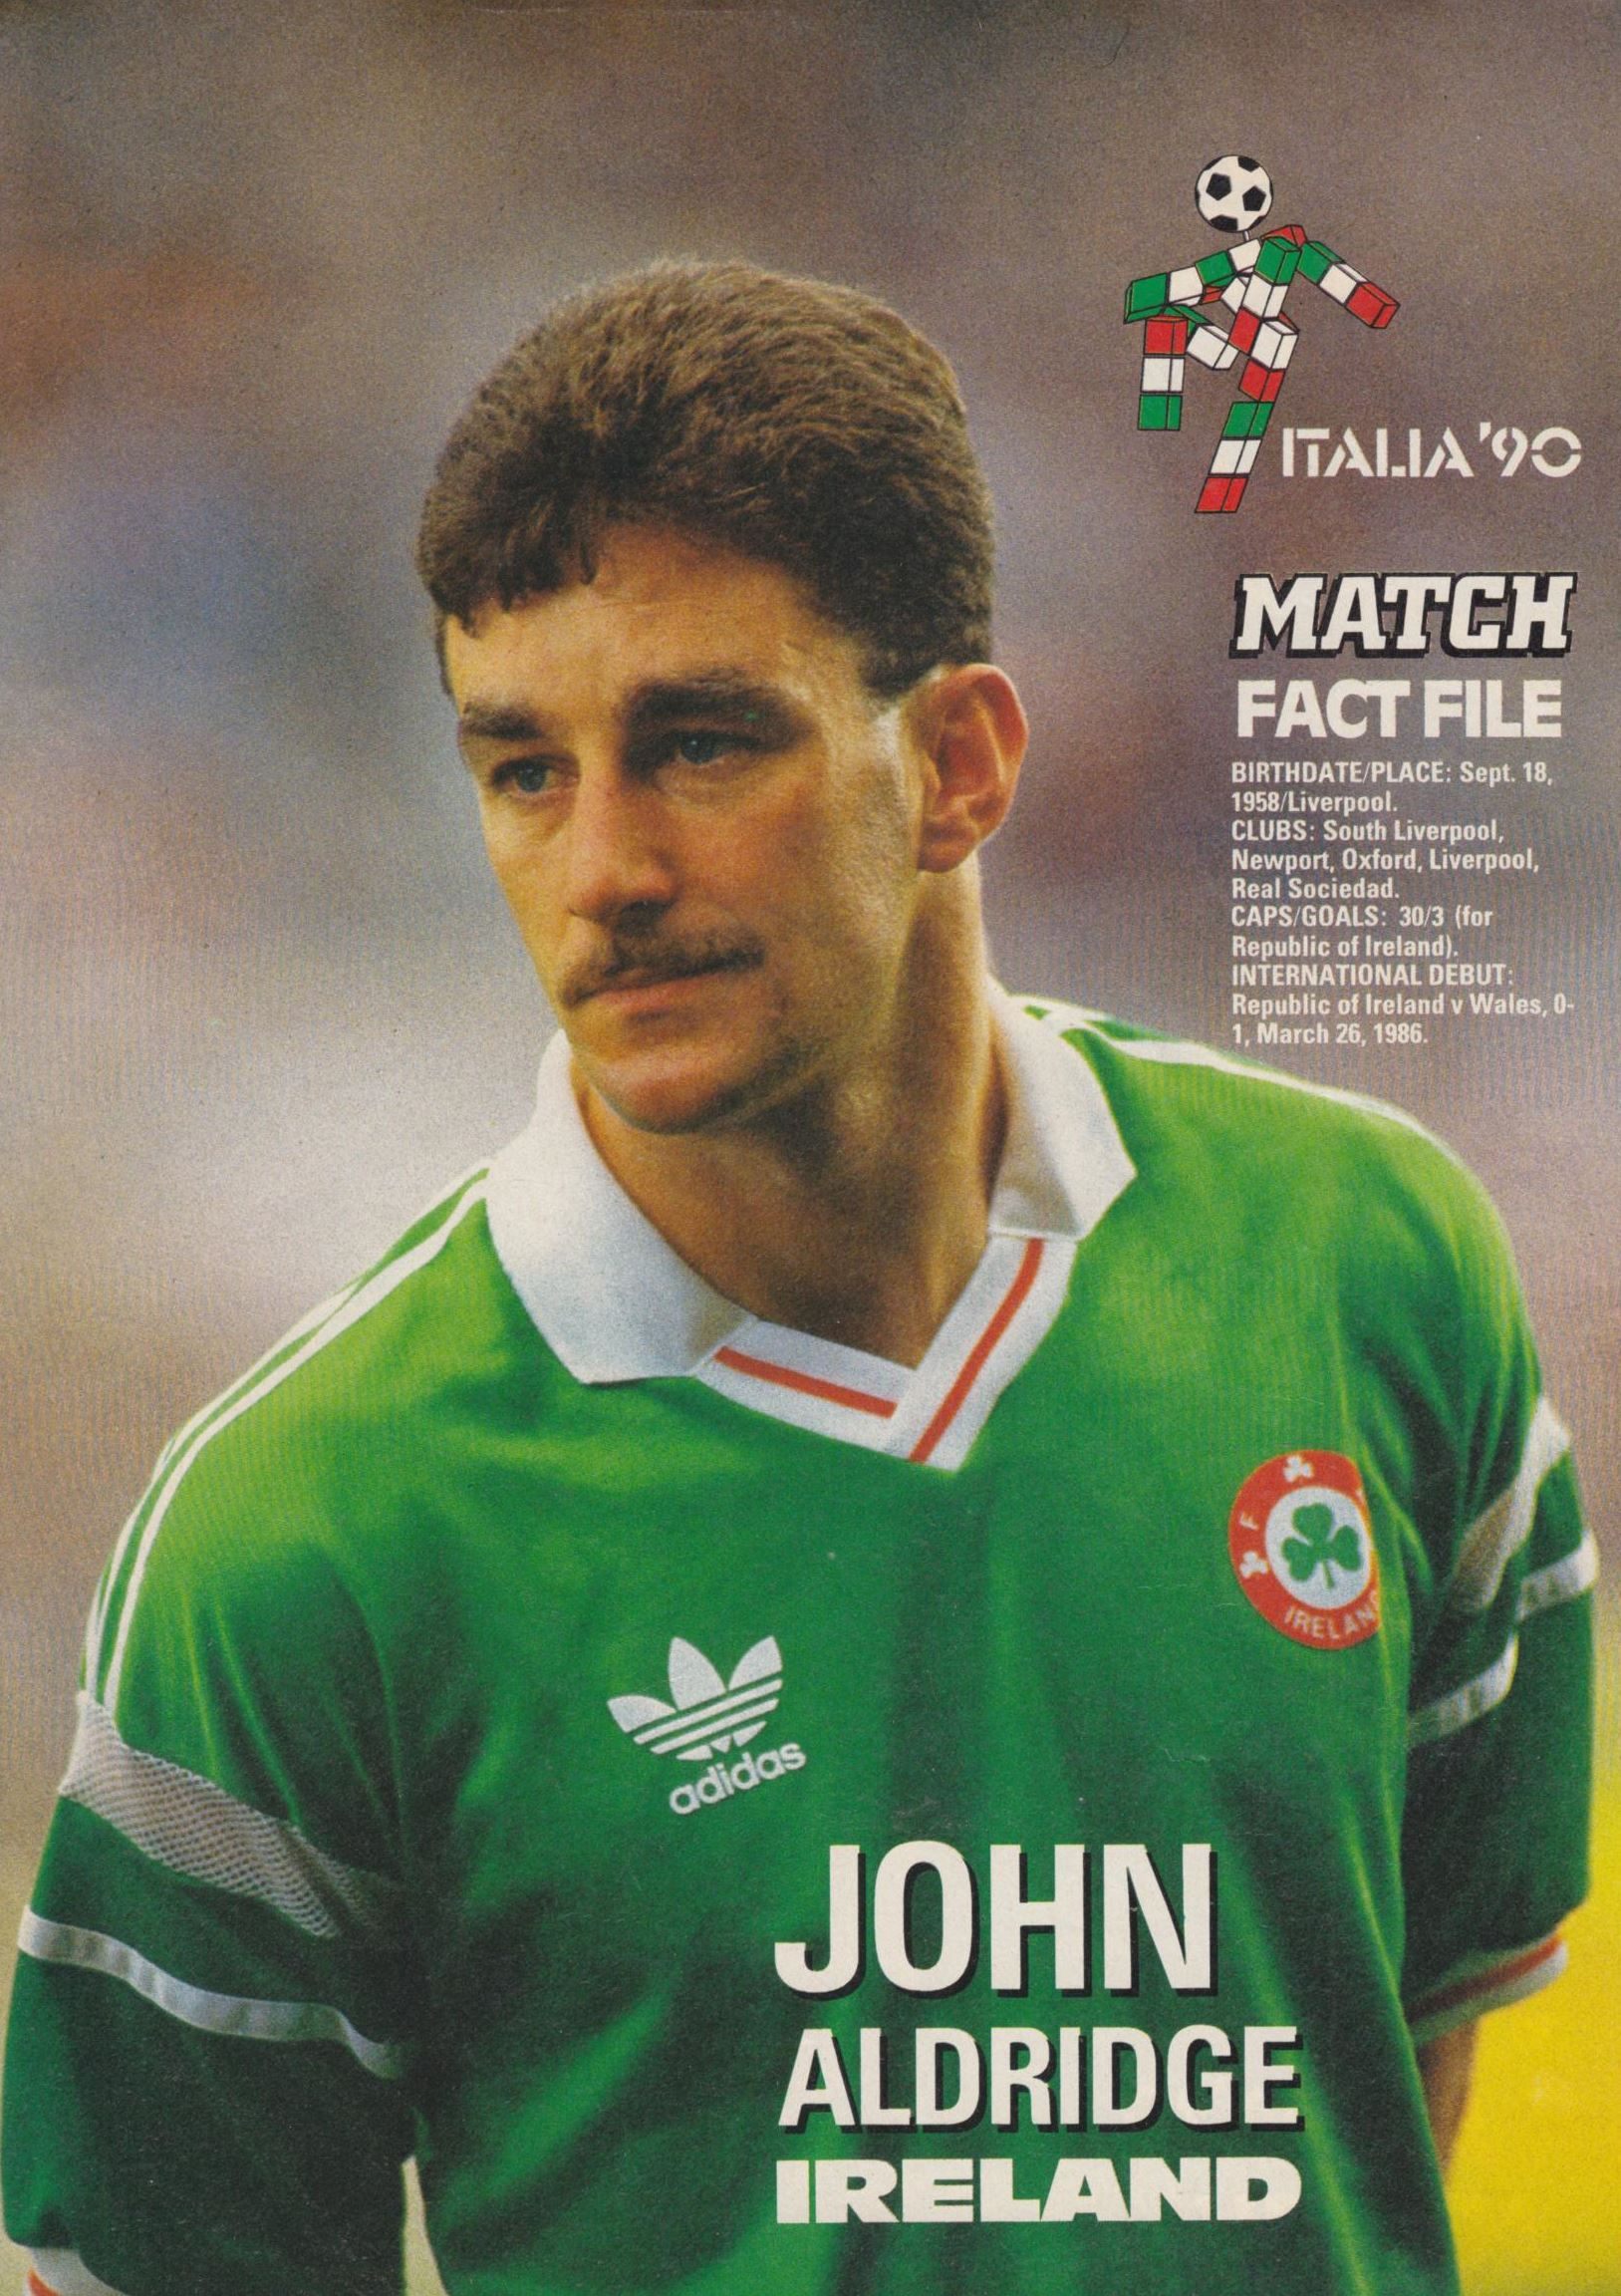 Match file of Ireland's Aldridge - World Cup 1990